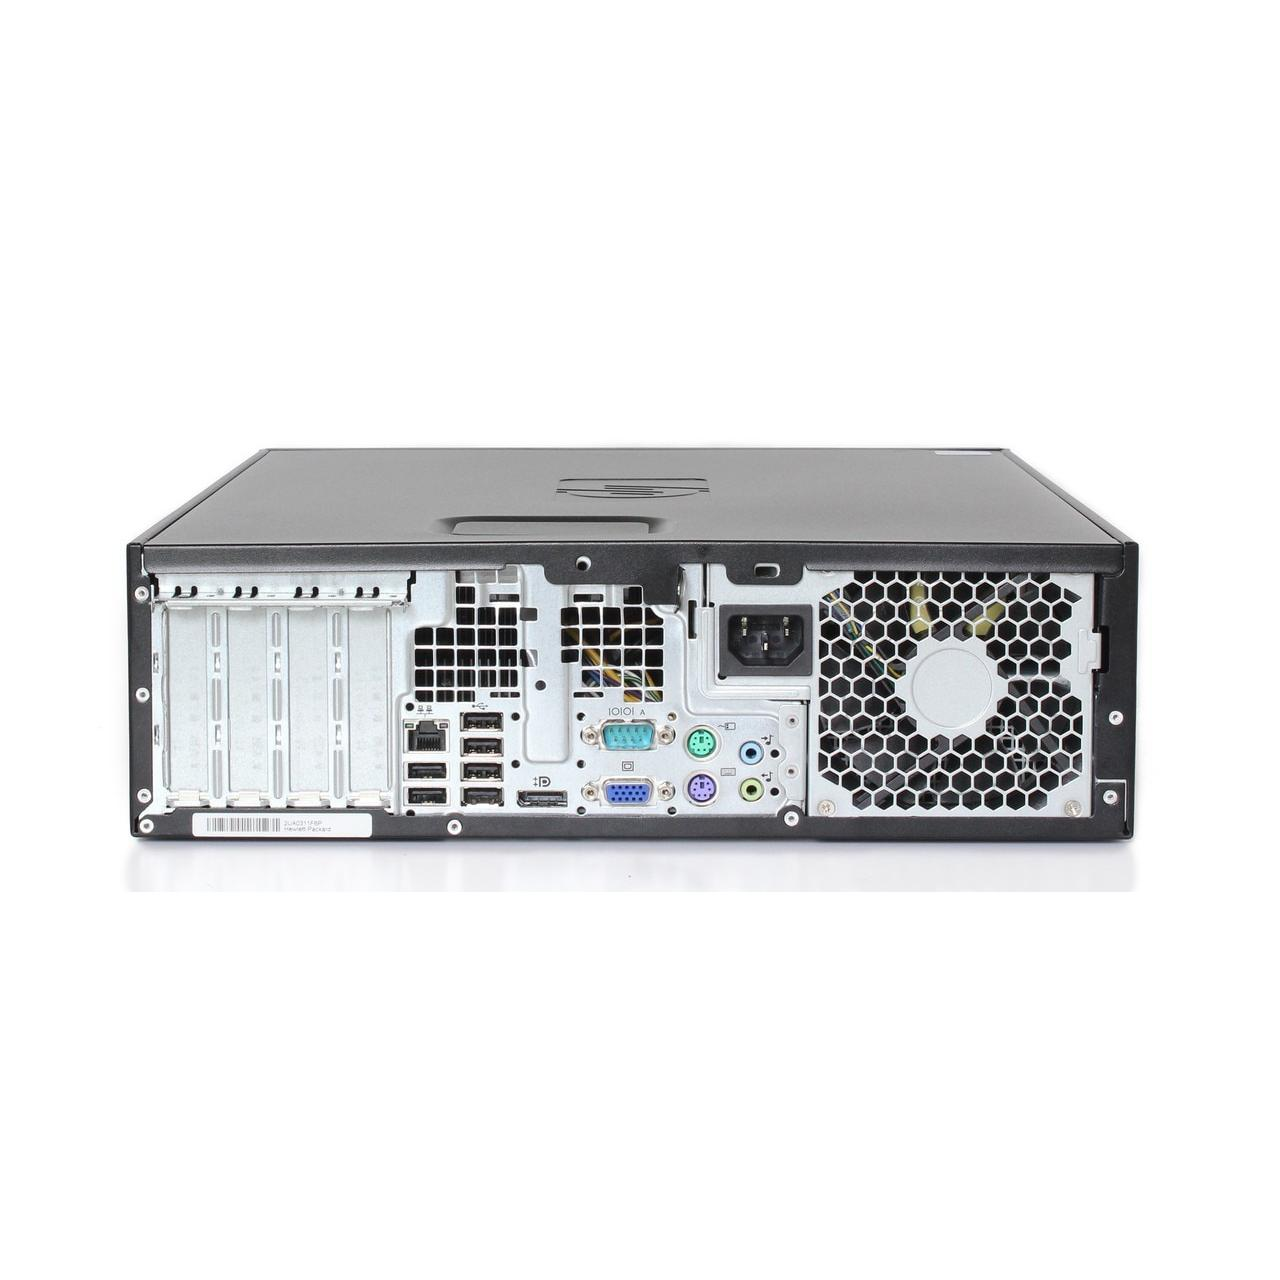 HP Compaq 8000 Elite SFF Core 2 Duo 3 GHz - HDD 2 To RAM 16 Go